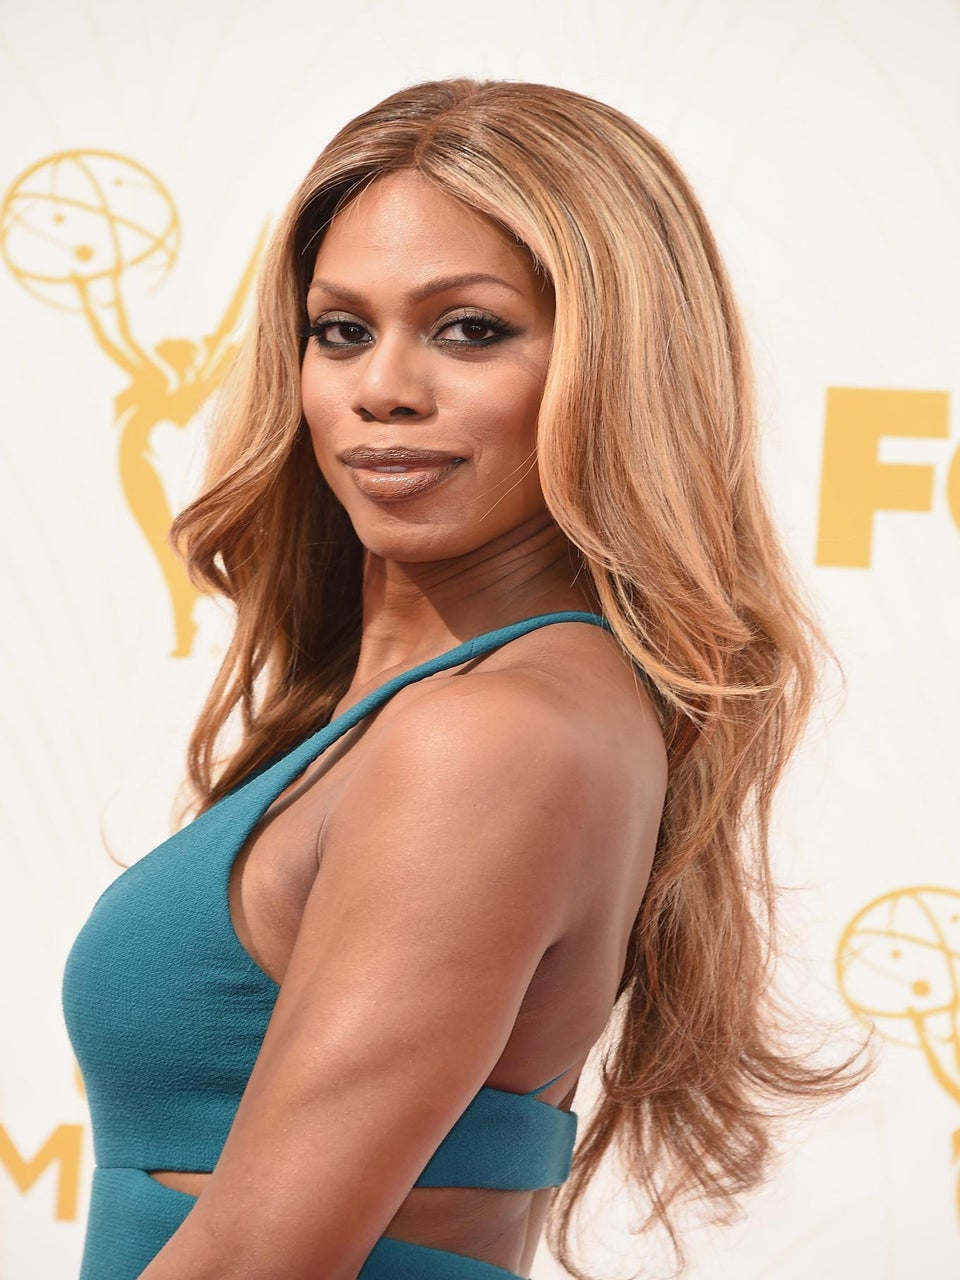 Get The Look: Laverne Cox at the Emmy Awards